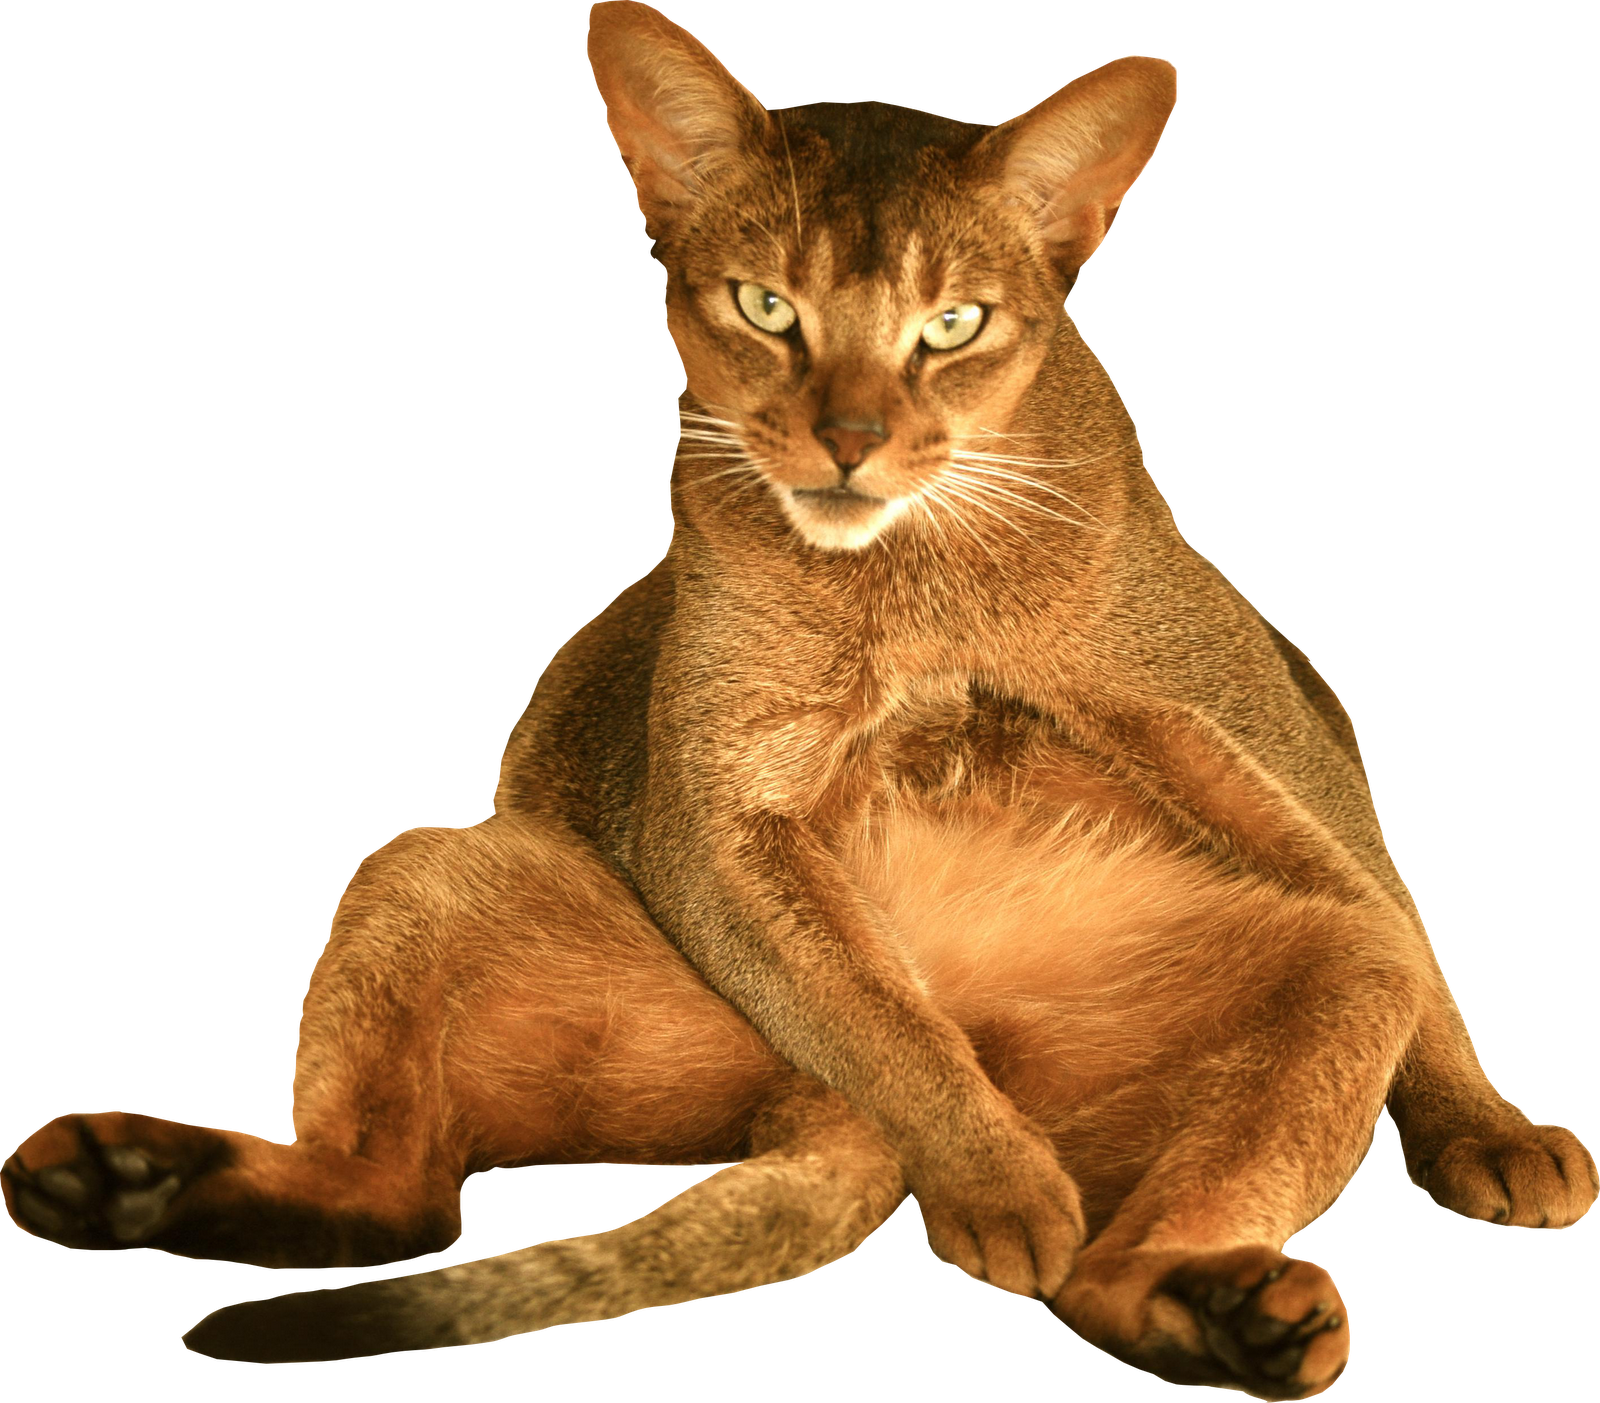 Transparent Background Cats Free Cat Png With Transparent